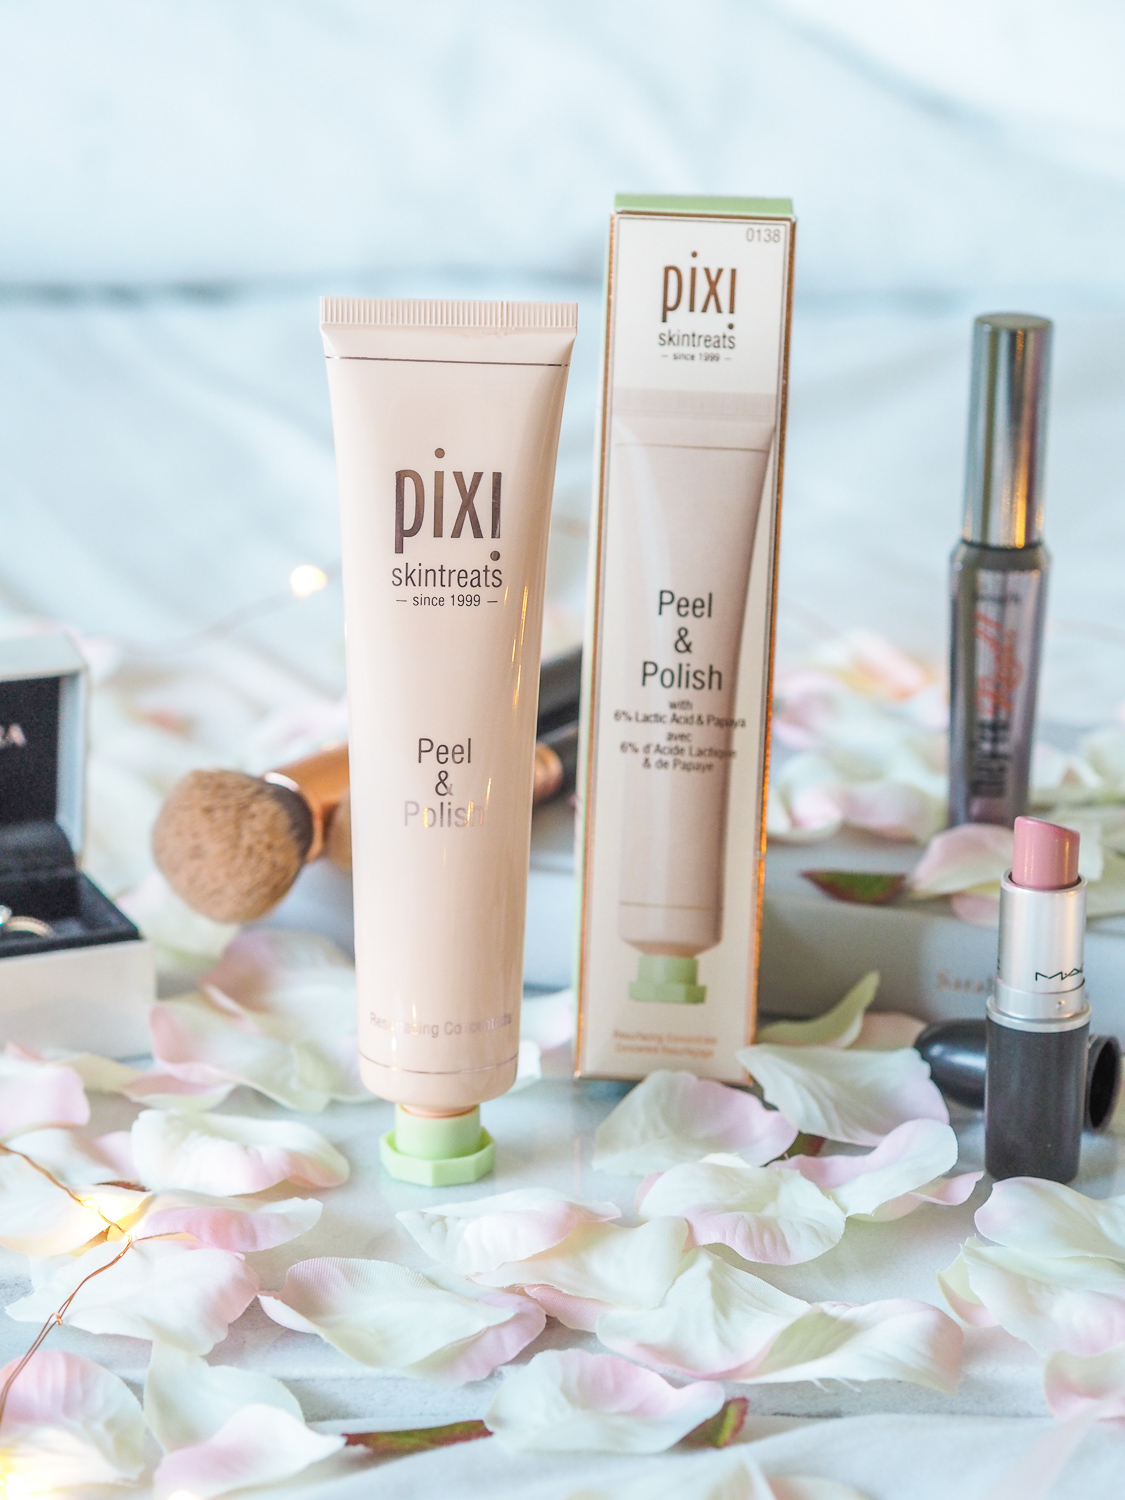 Another product from Pixi: The Peel and Polish | lucy-cole